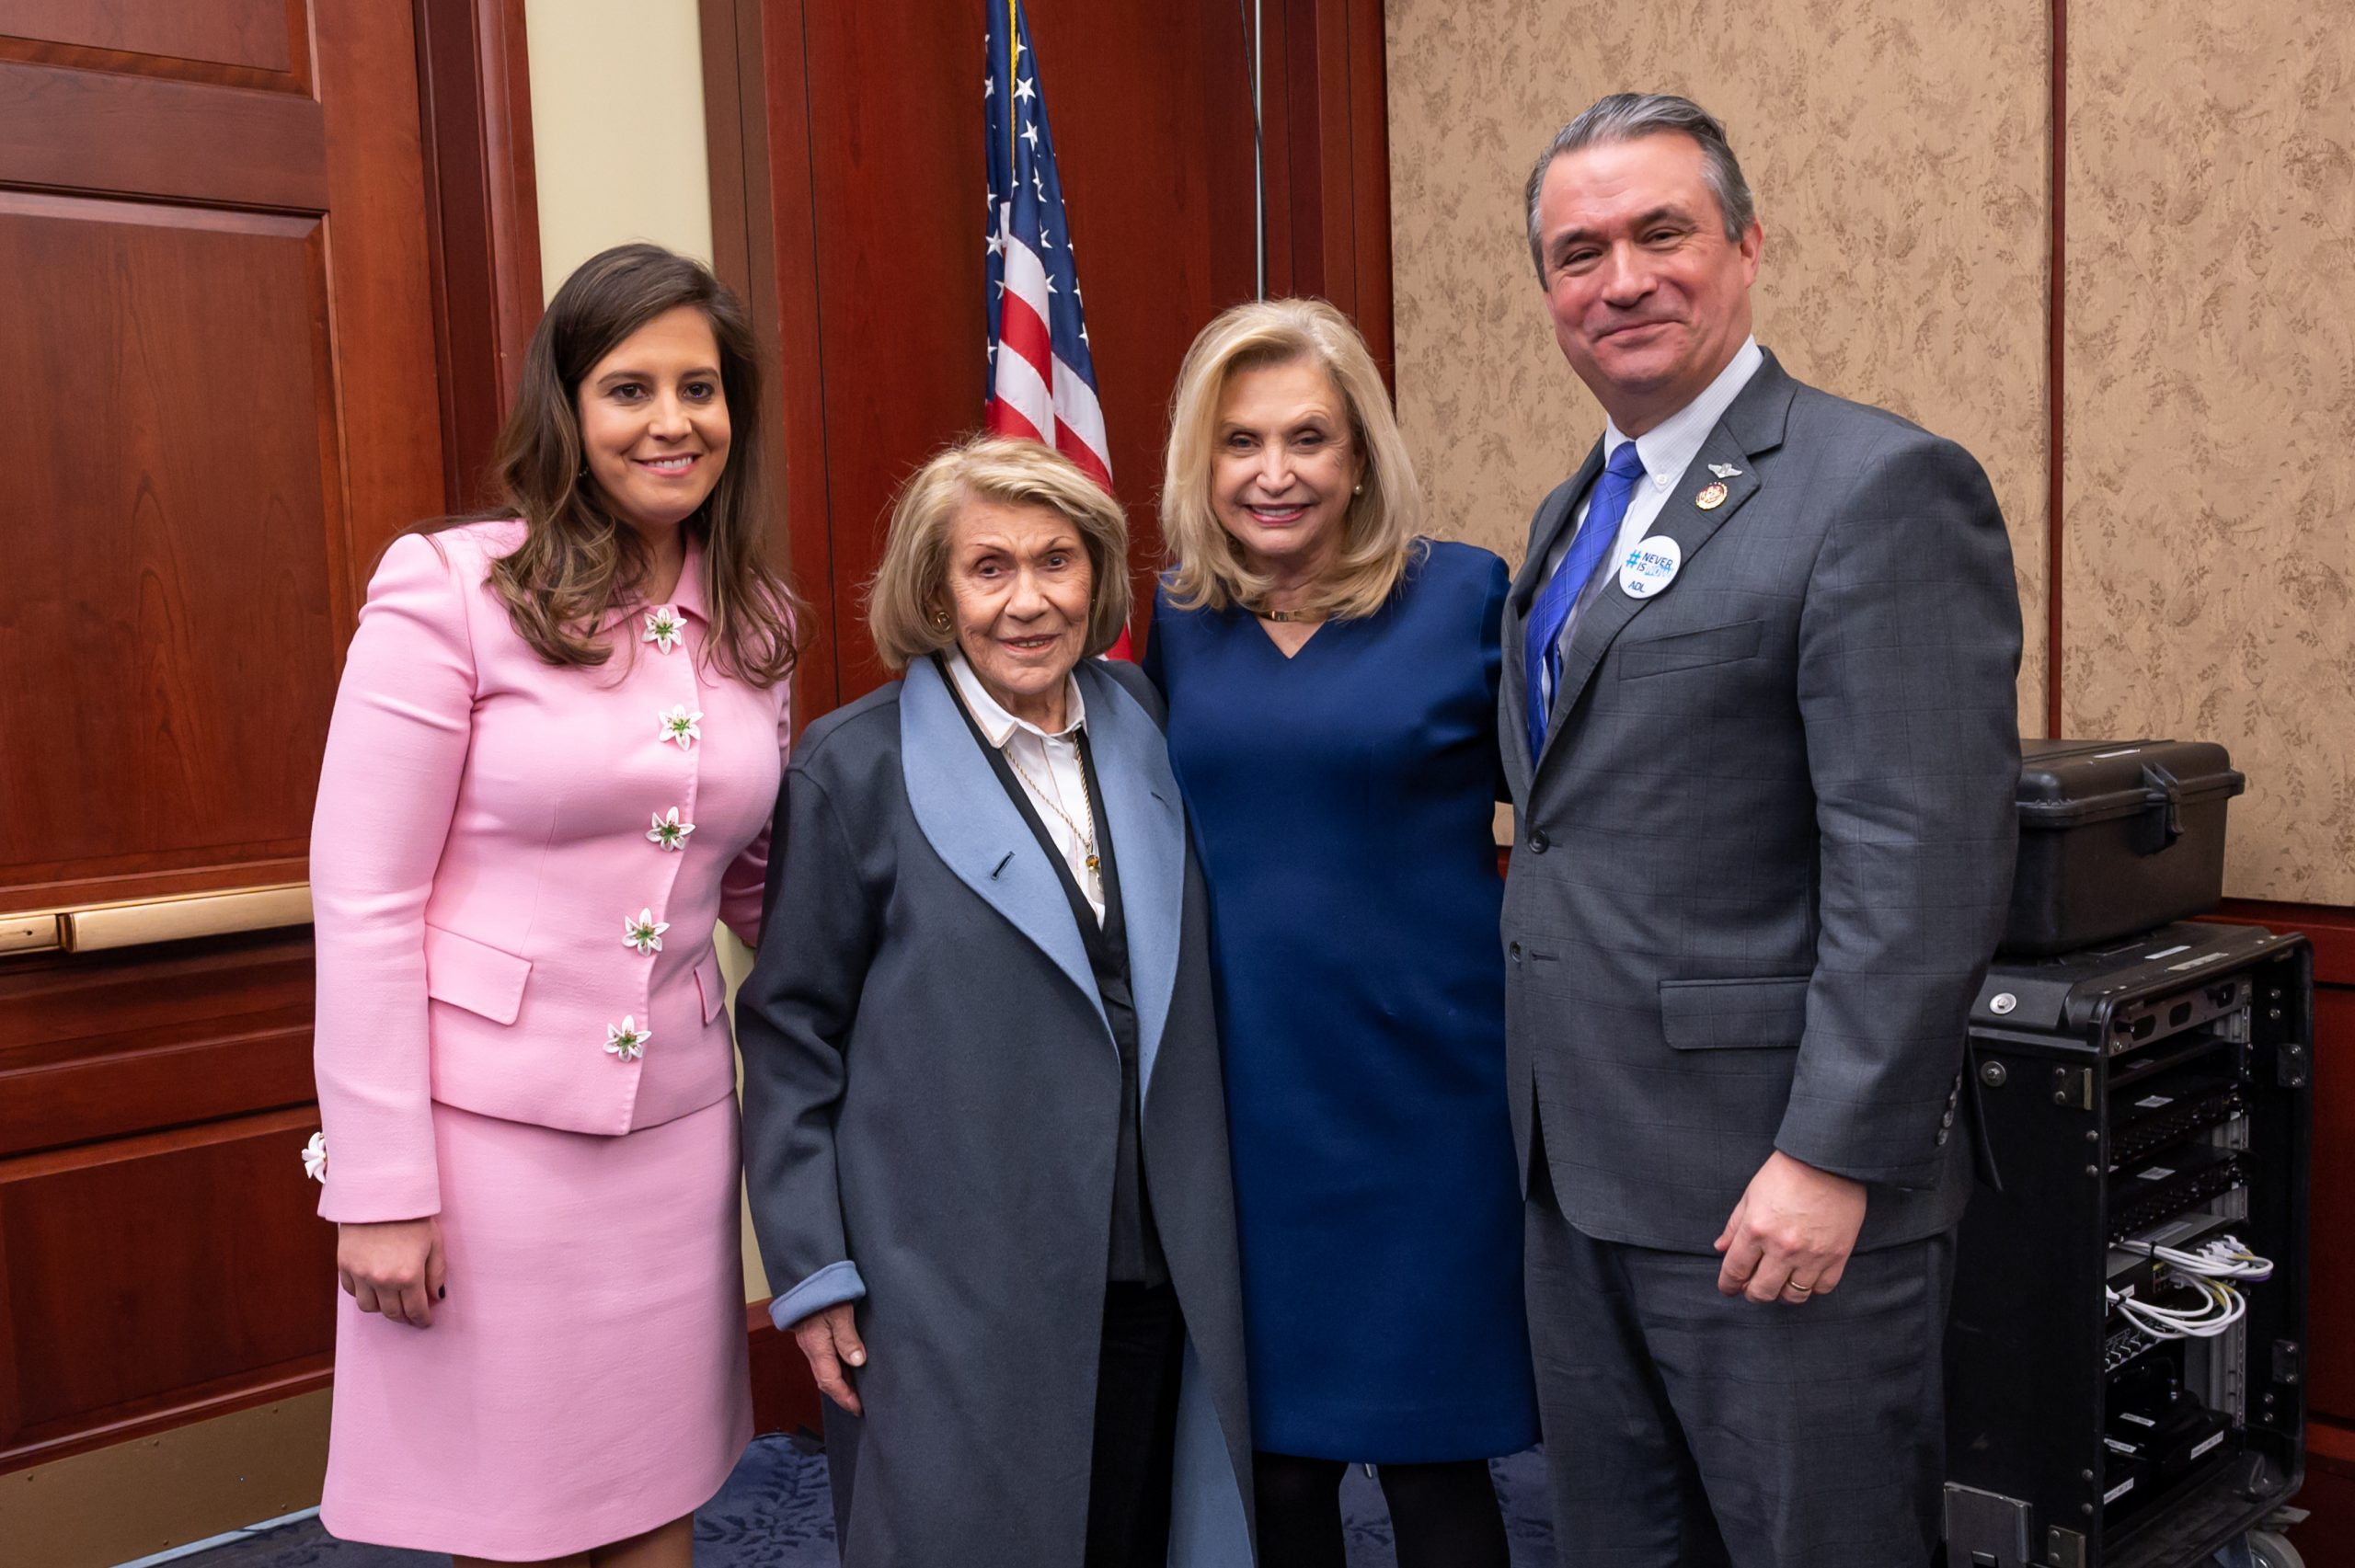 American Jewish Congress applauds the passage of the Never Again Education Act